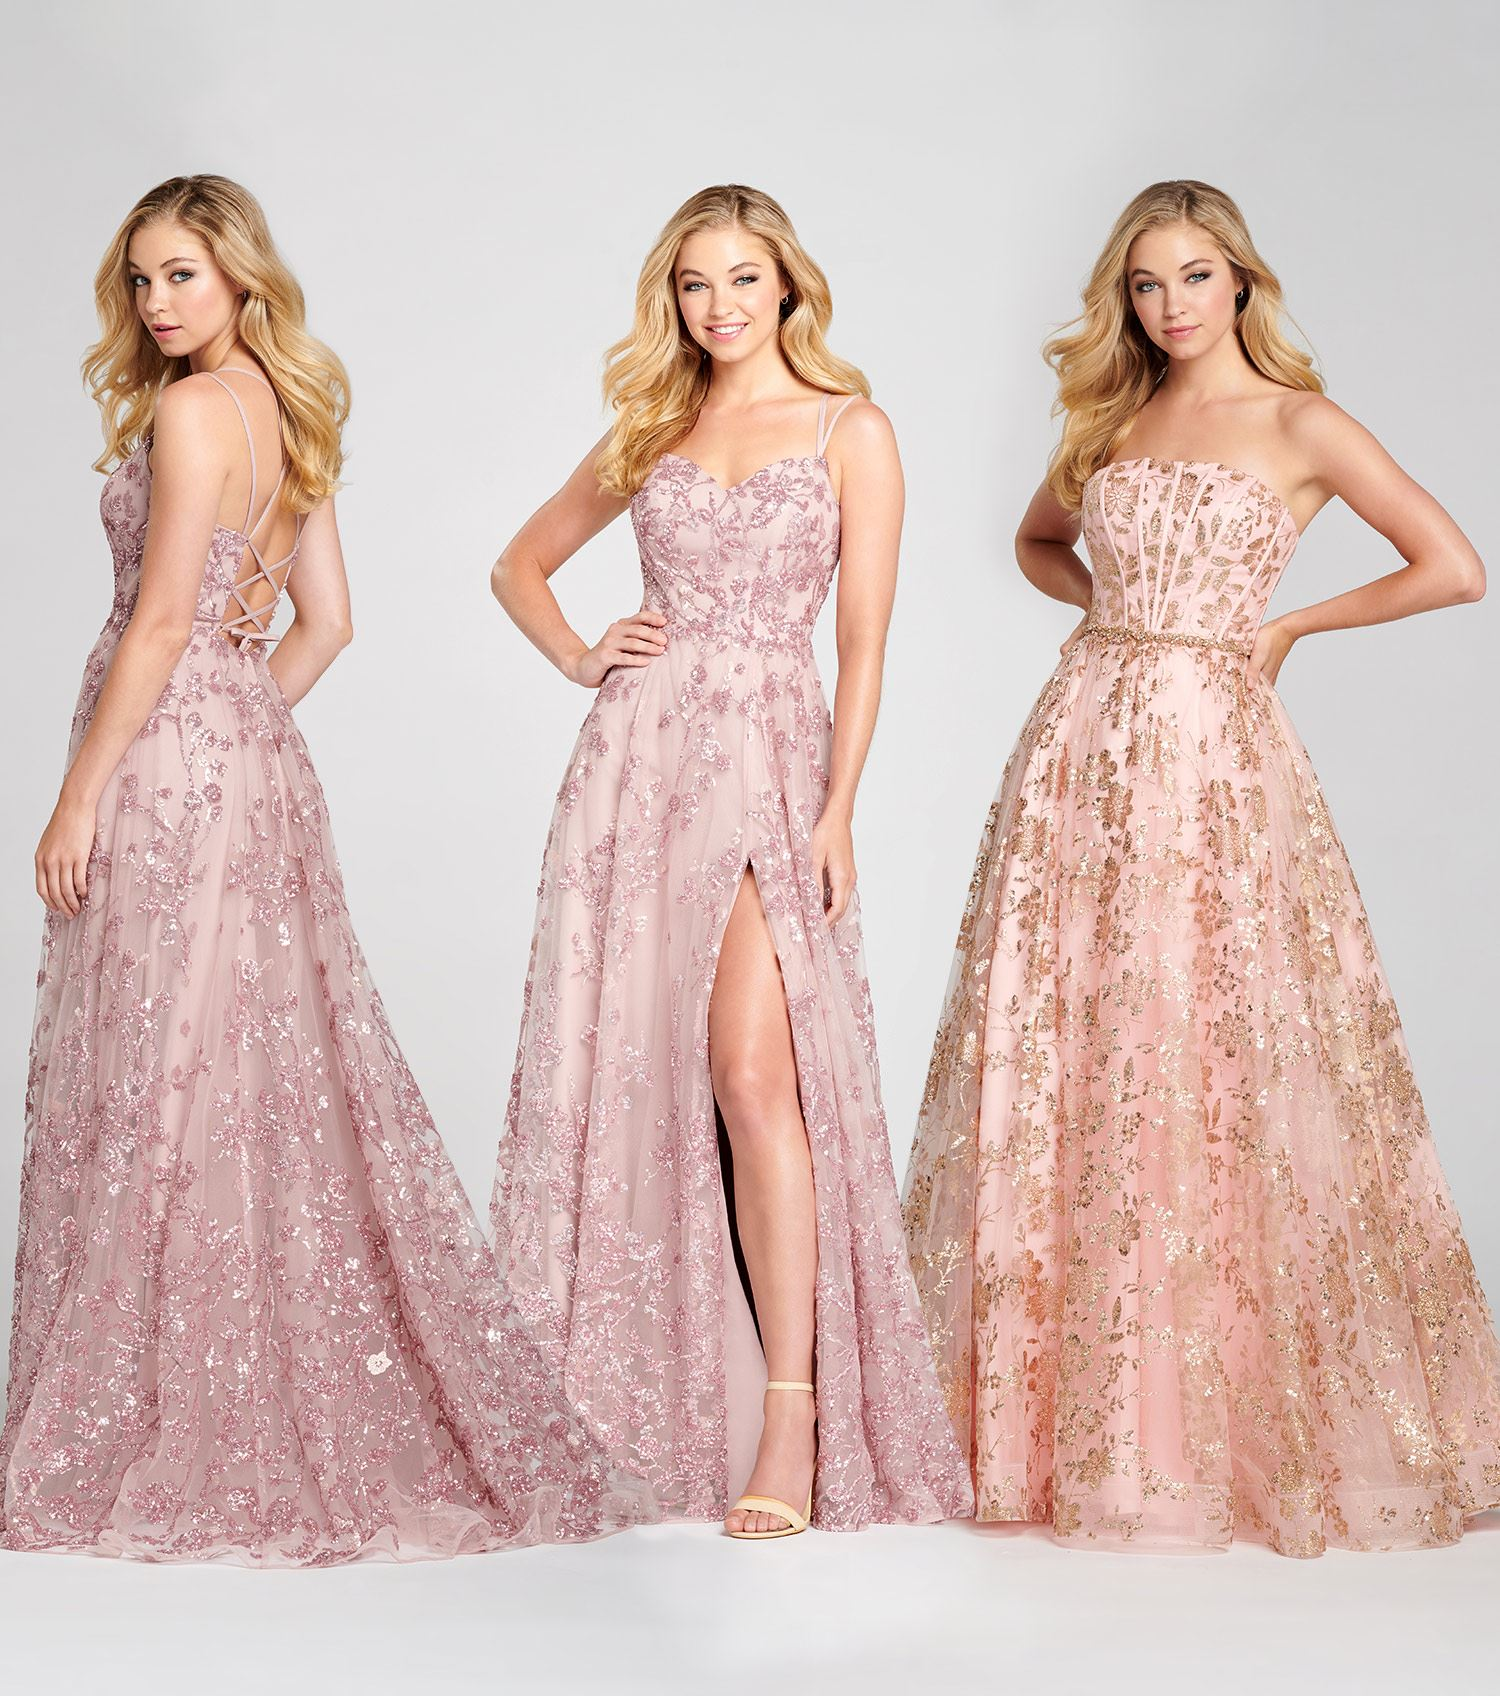 Blonde model wearing lace prom dresses by Colette for Mon Cheri